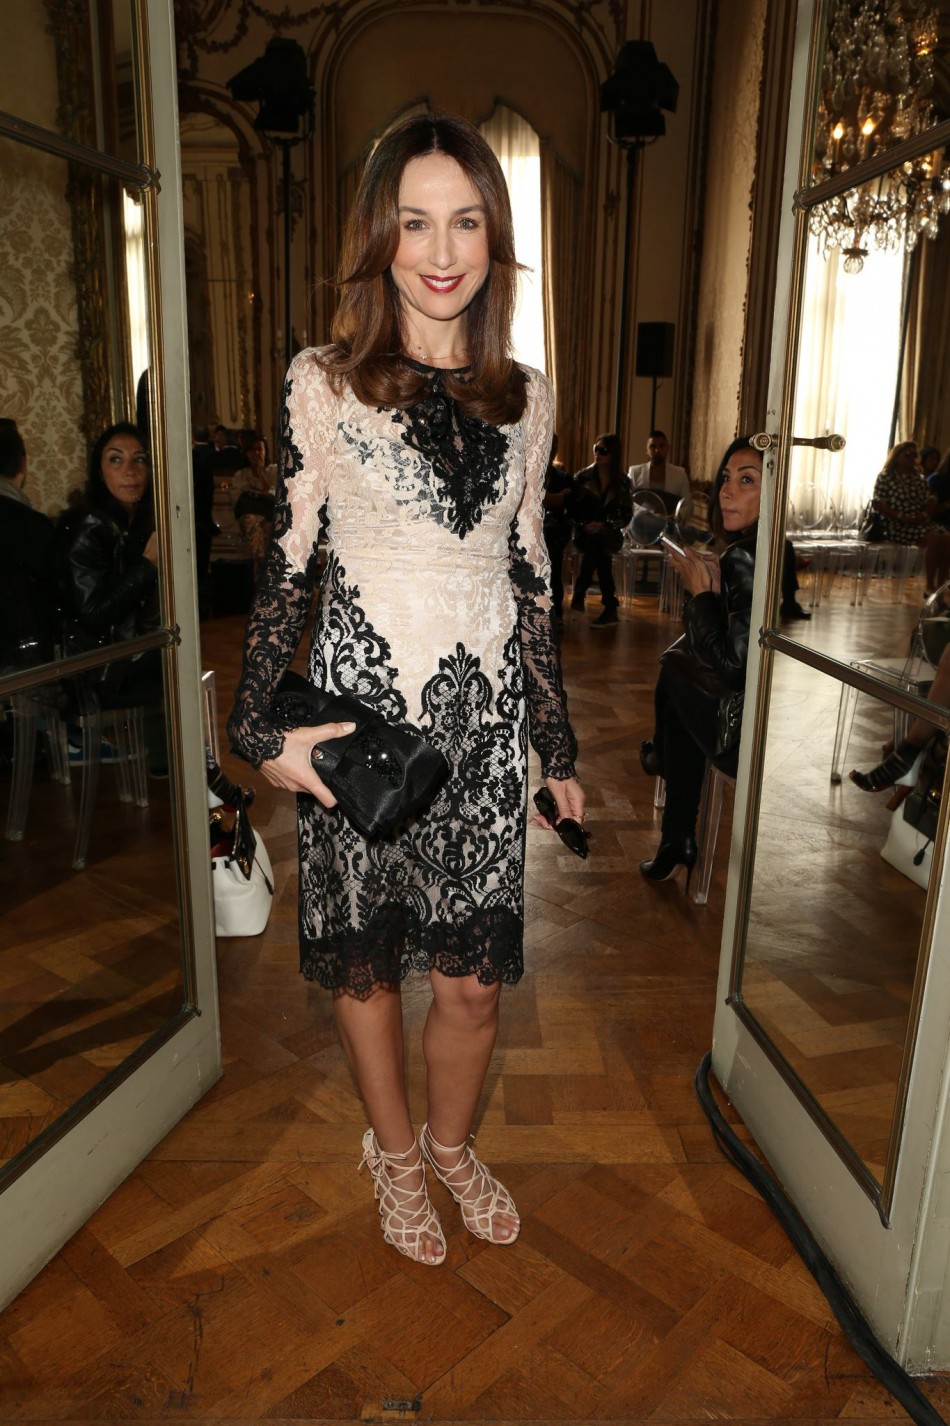 Actress Elsa Zylberstein at Zuhair Murad fashion show in Paris